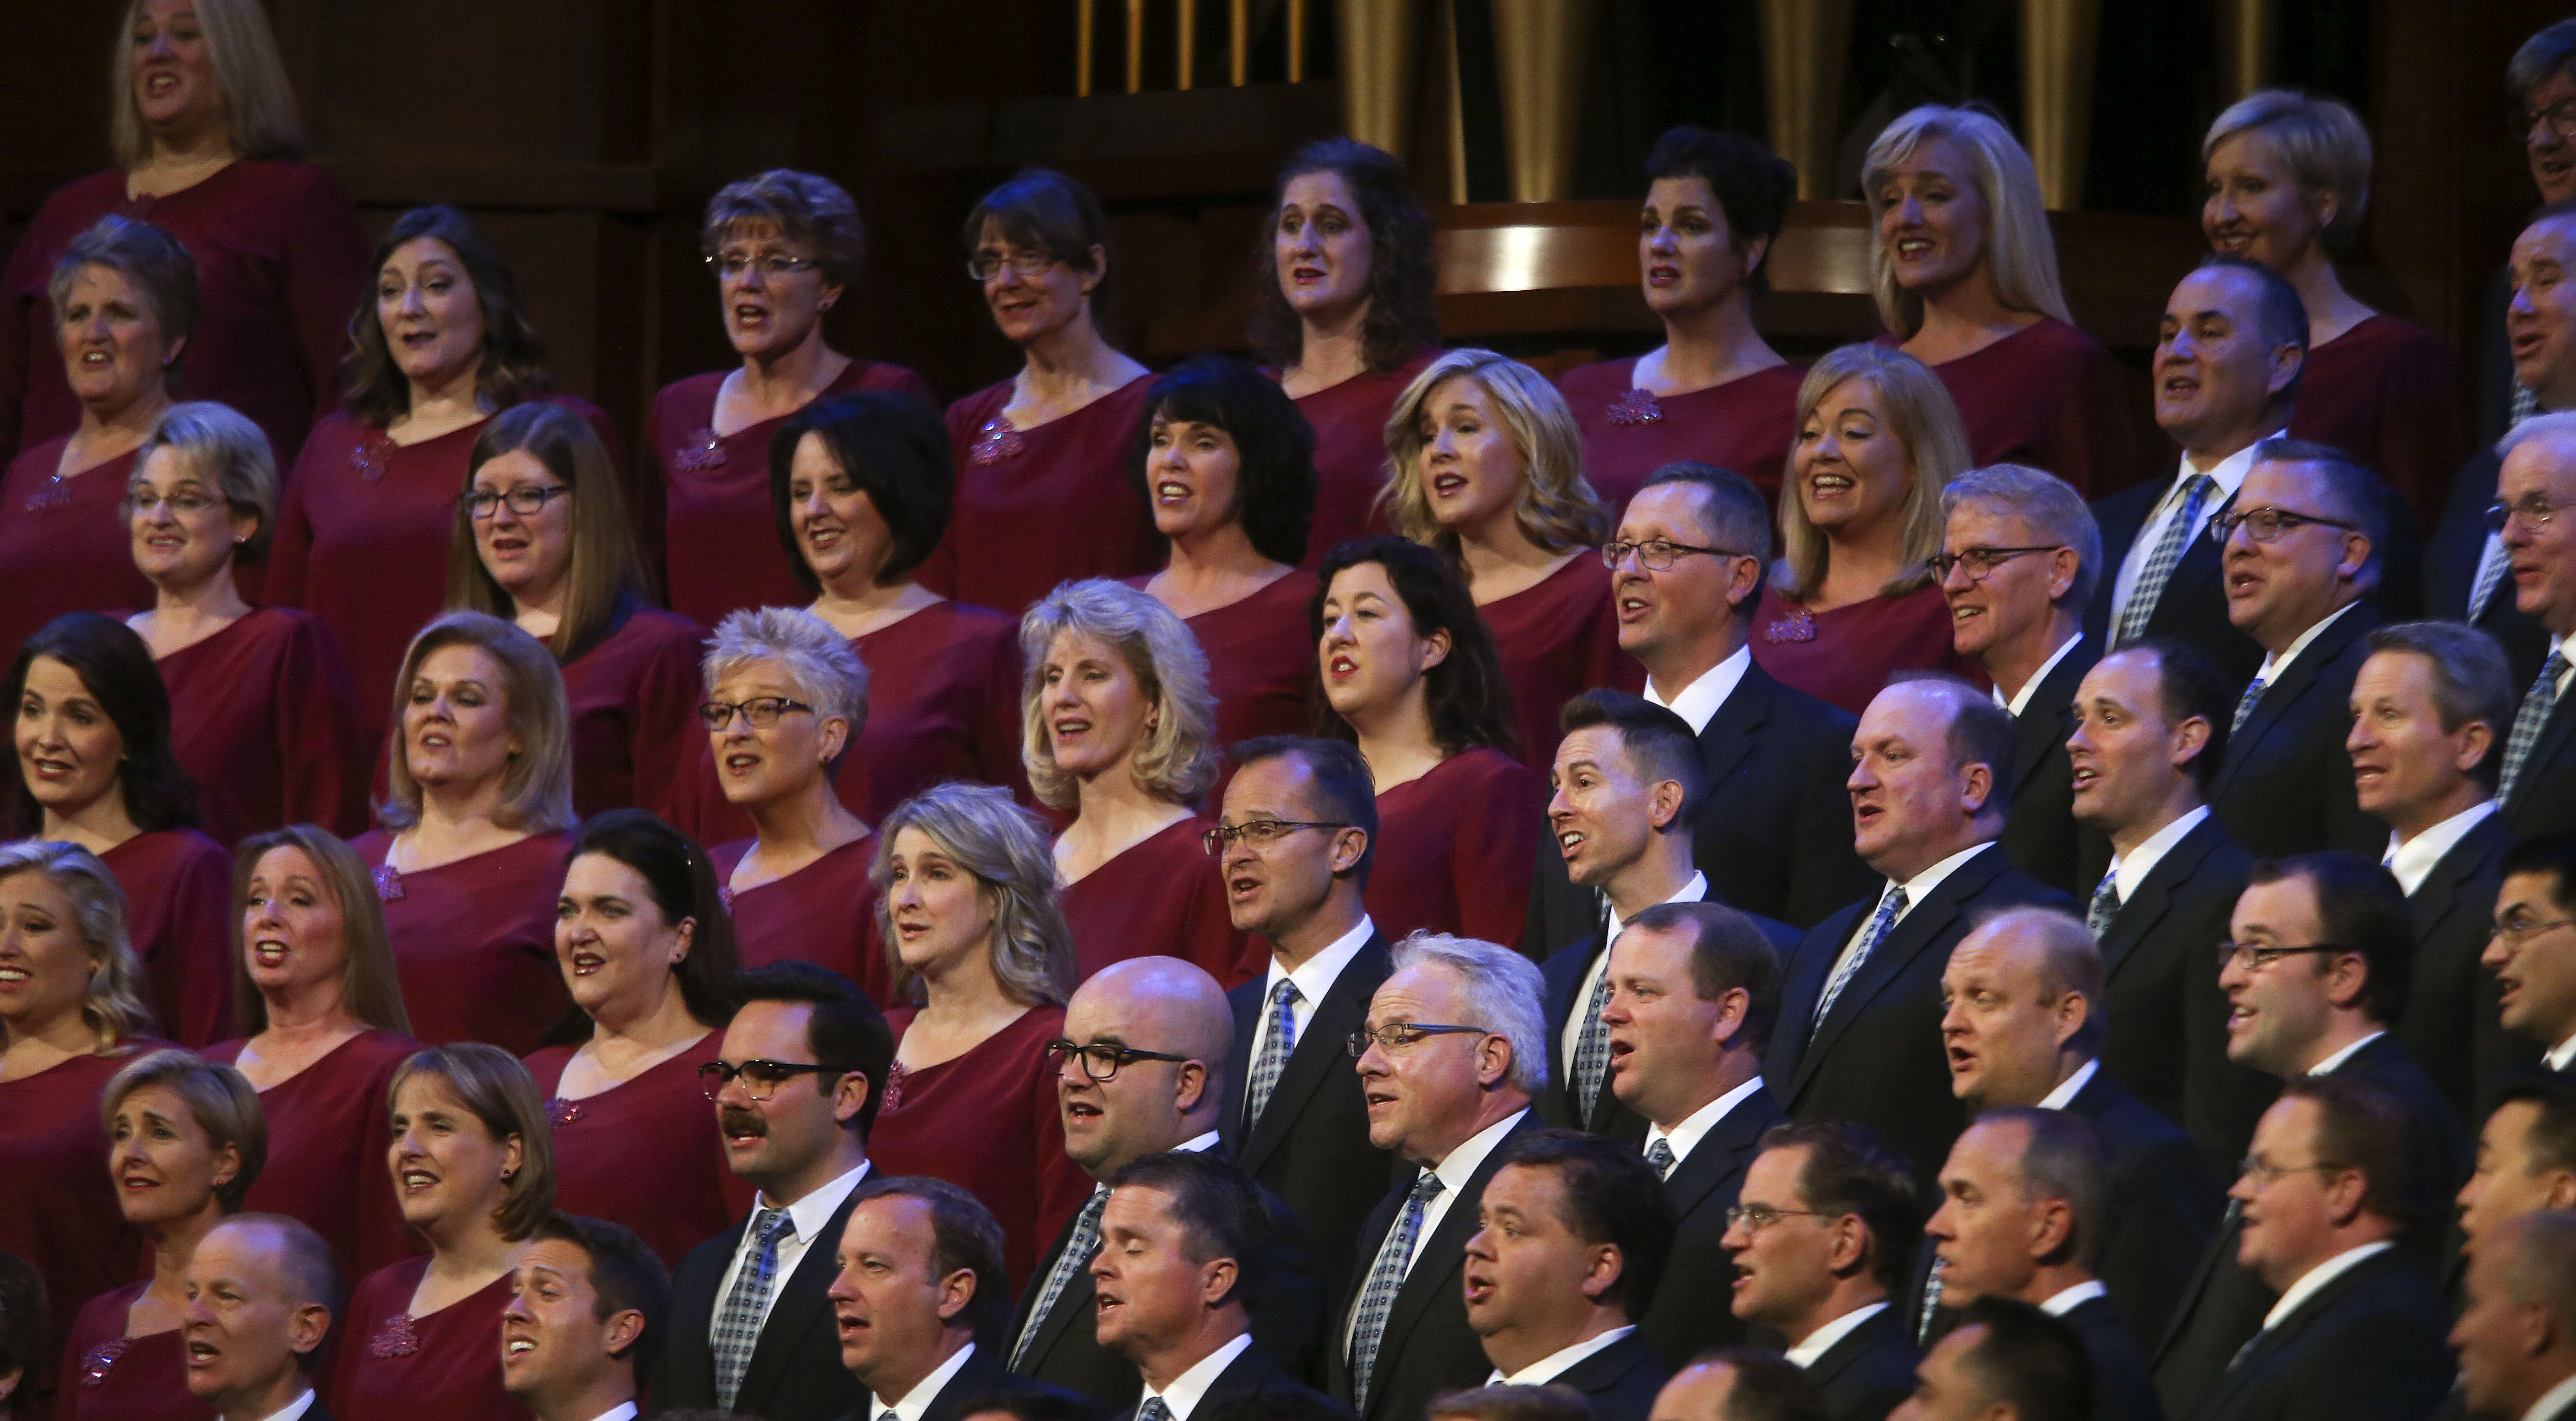 """The Tabernacle Choir at Temple Square performs during the """"Music and the Spoken Word"""" broadcast prior to the Sunday morning session of the 189th Semiannual General Conference of The Church of Jesus Christ of Latter-day Saints in the Conference Center in Salt Lake City on Sunday, Oct. 6, 2019."""